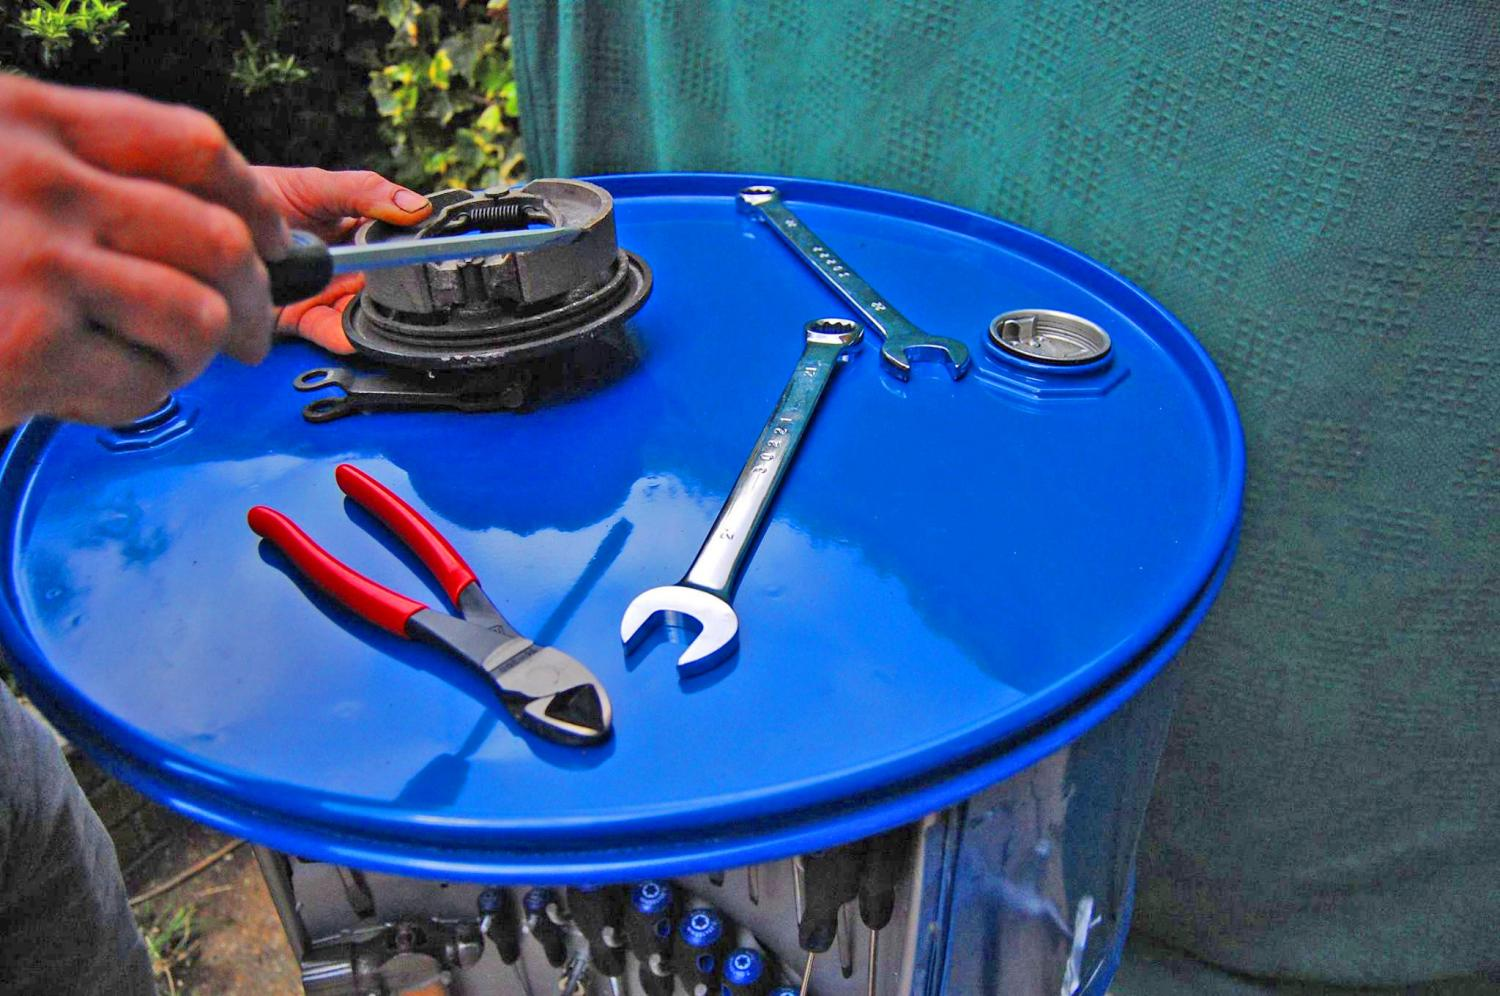 The Ultimate Toolbox - Drum Barrel Toolbox with rotating pegwalls holds tools and socket sets